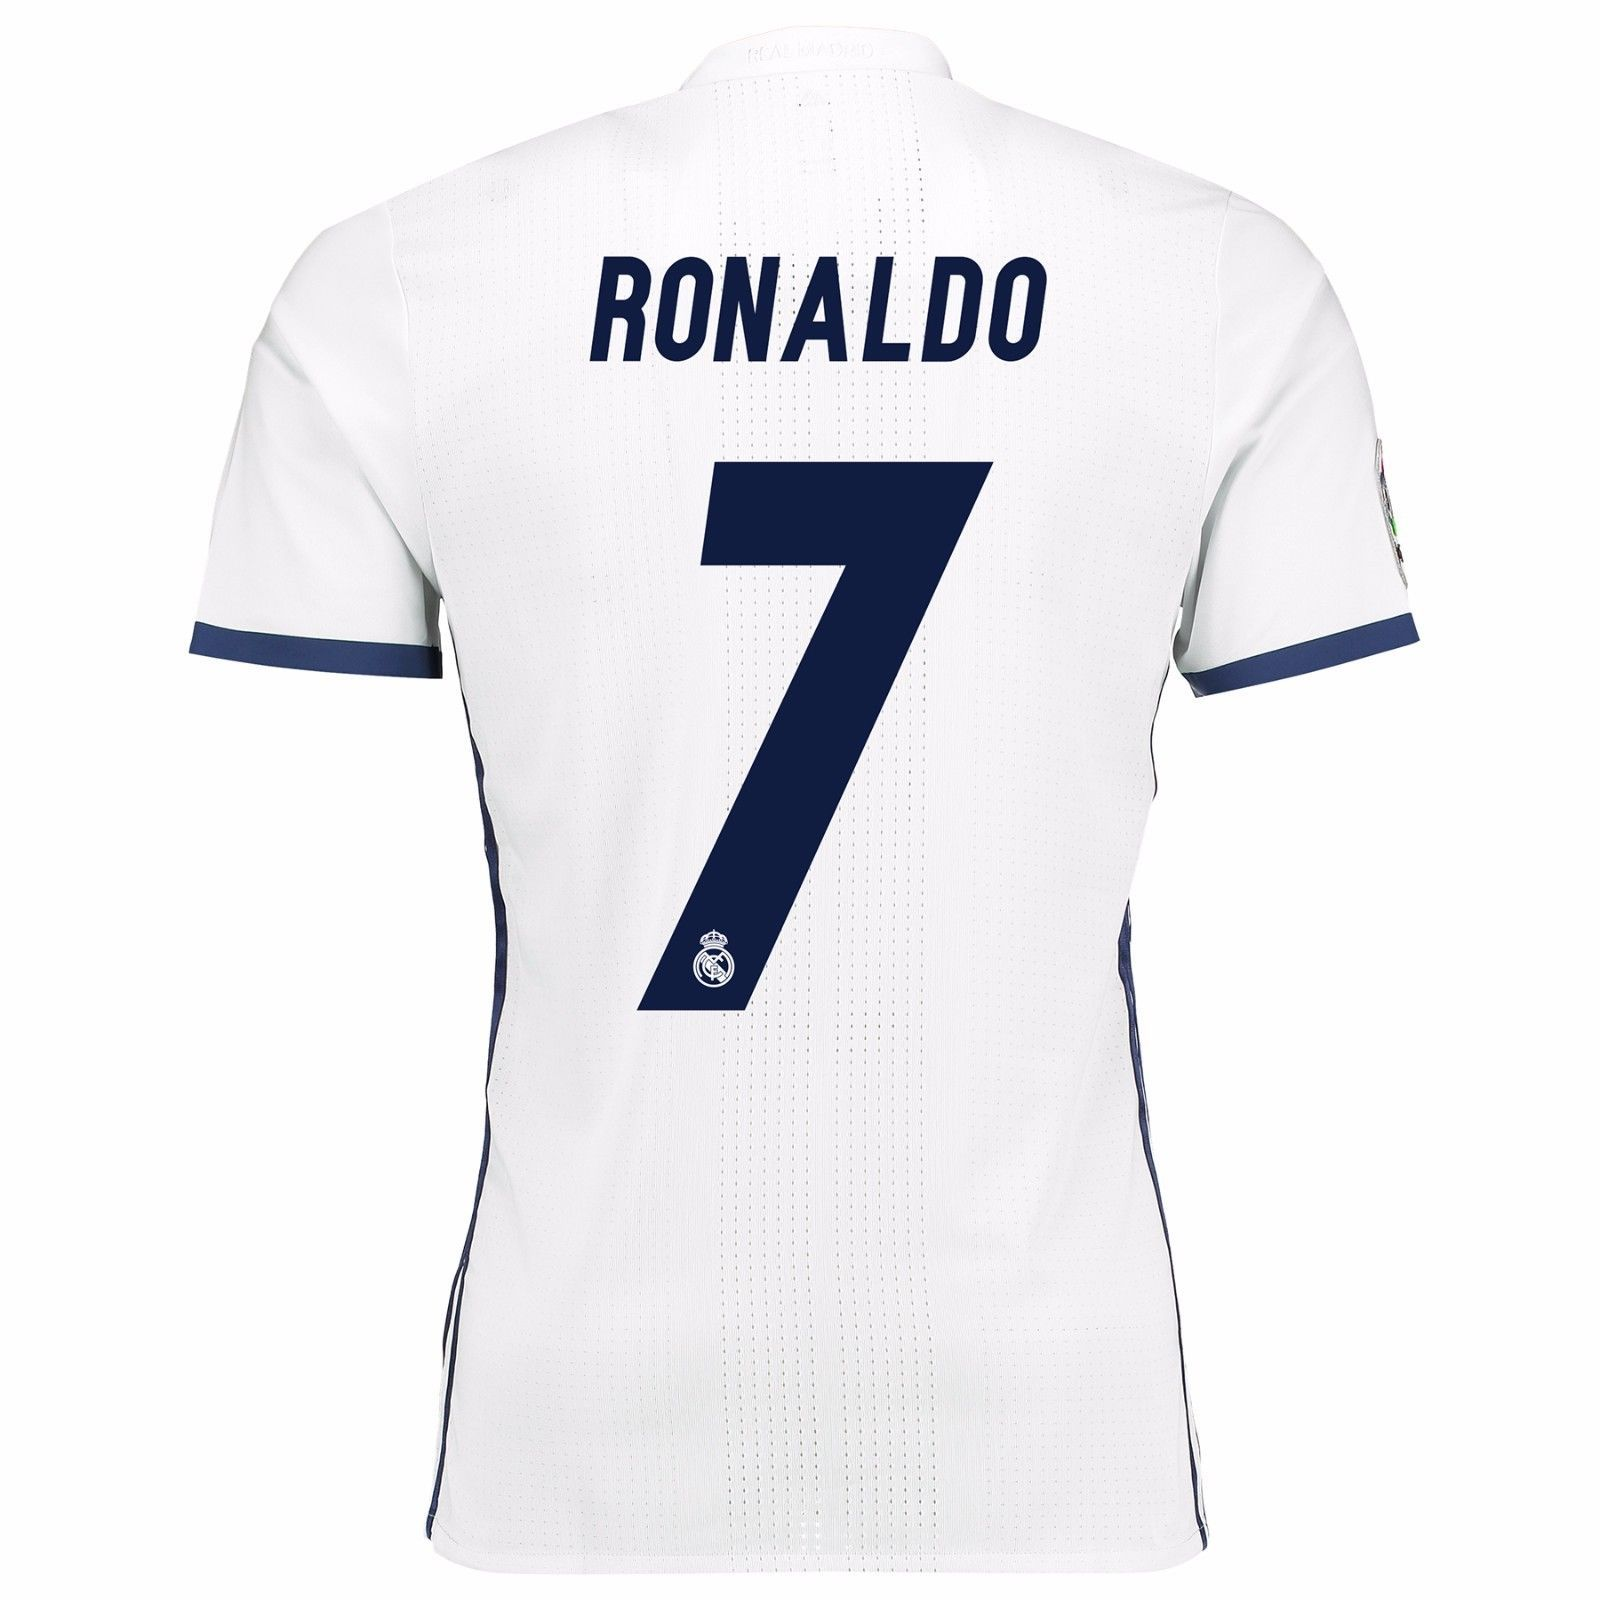 674ea1924 2016 17 Cristiano Ronaldo Jersey Number 7 Home Men s Replica Real Madrid  Team Real Madrid